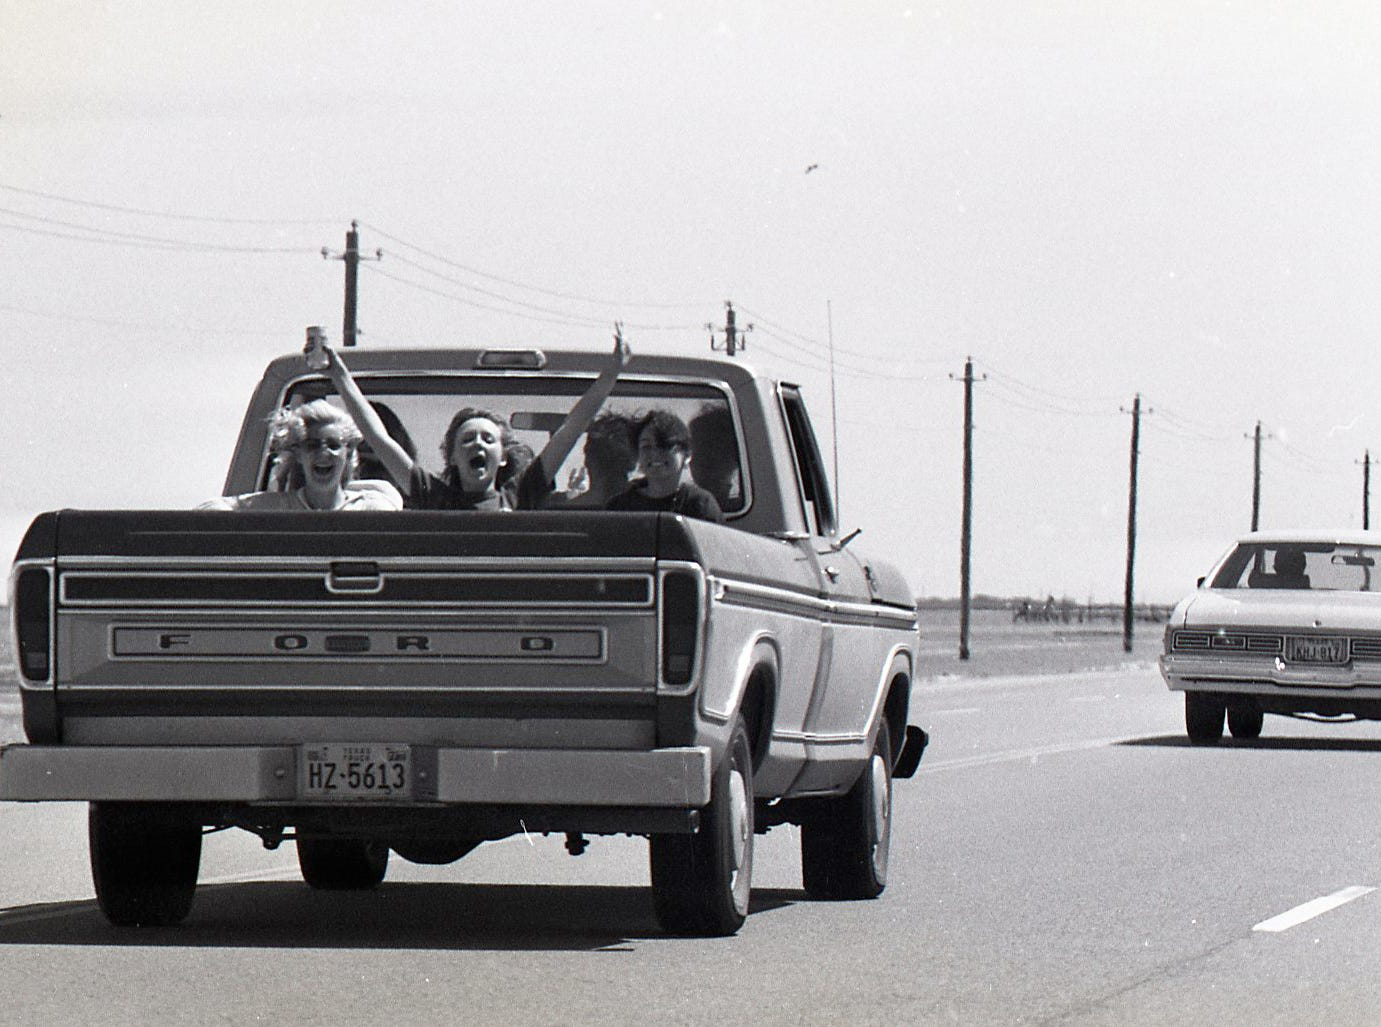 These kids were excited for spring break as they drive along the JFK Causeway on March 18, 1978.